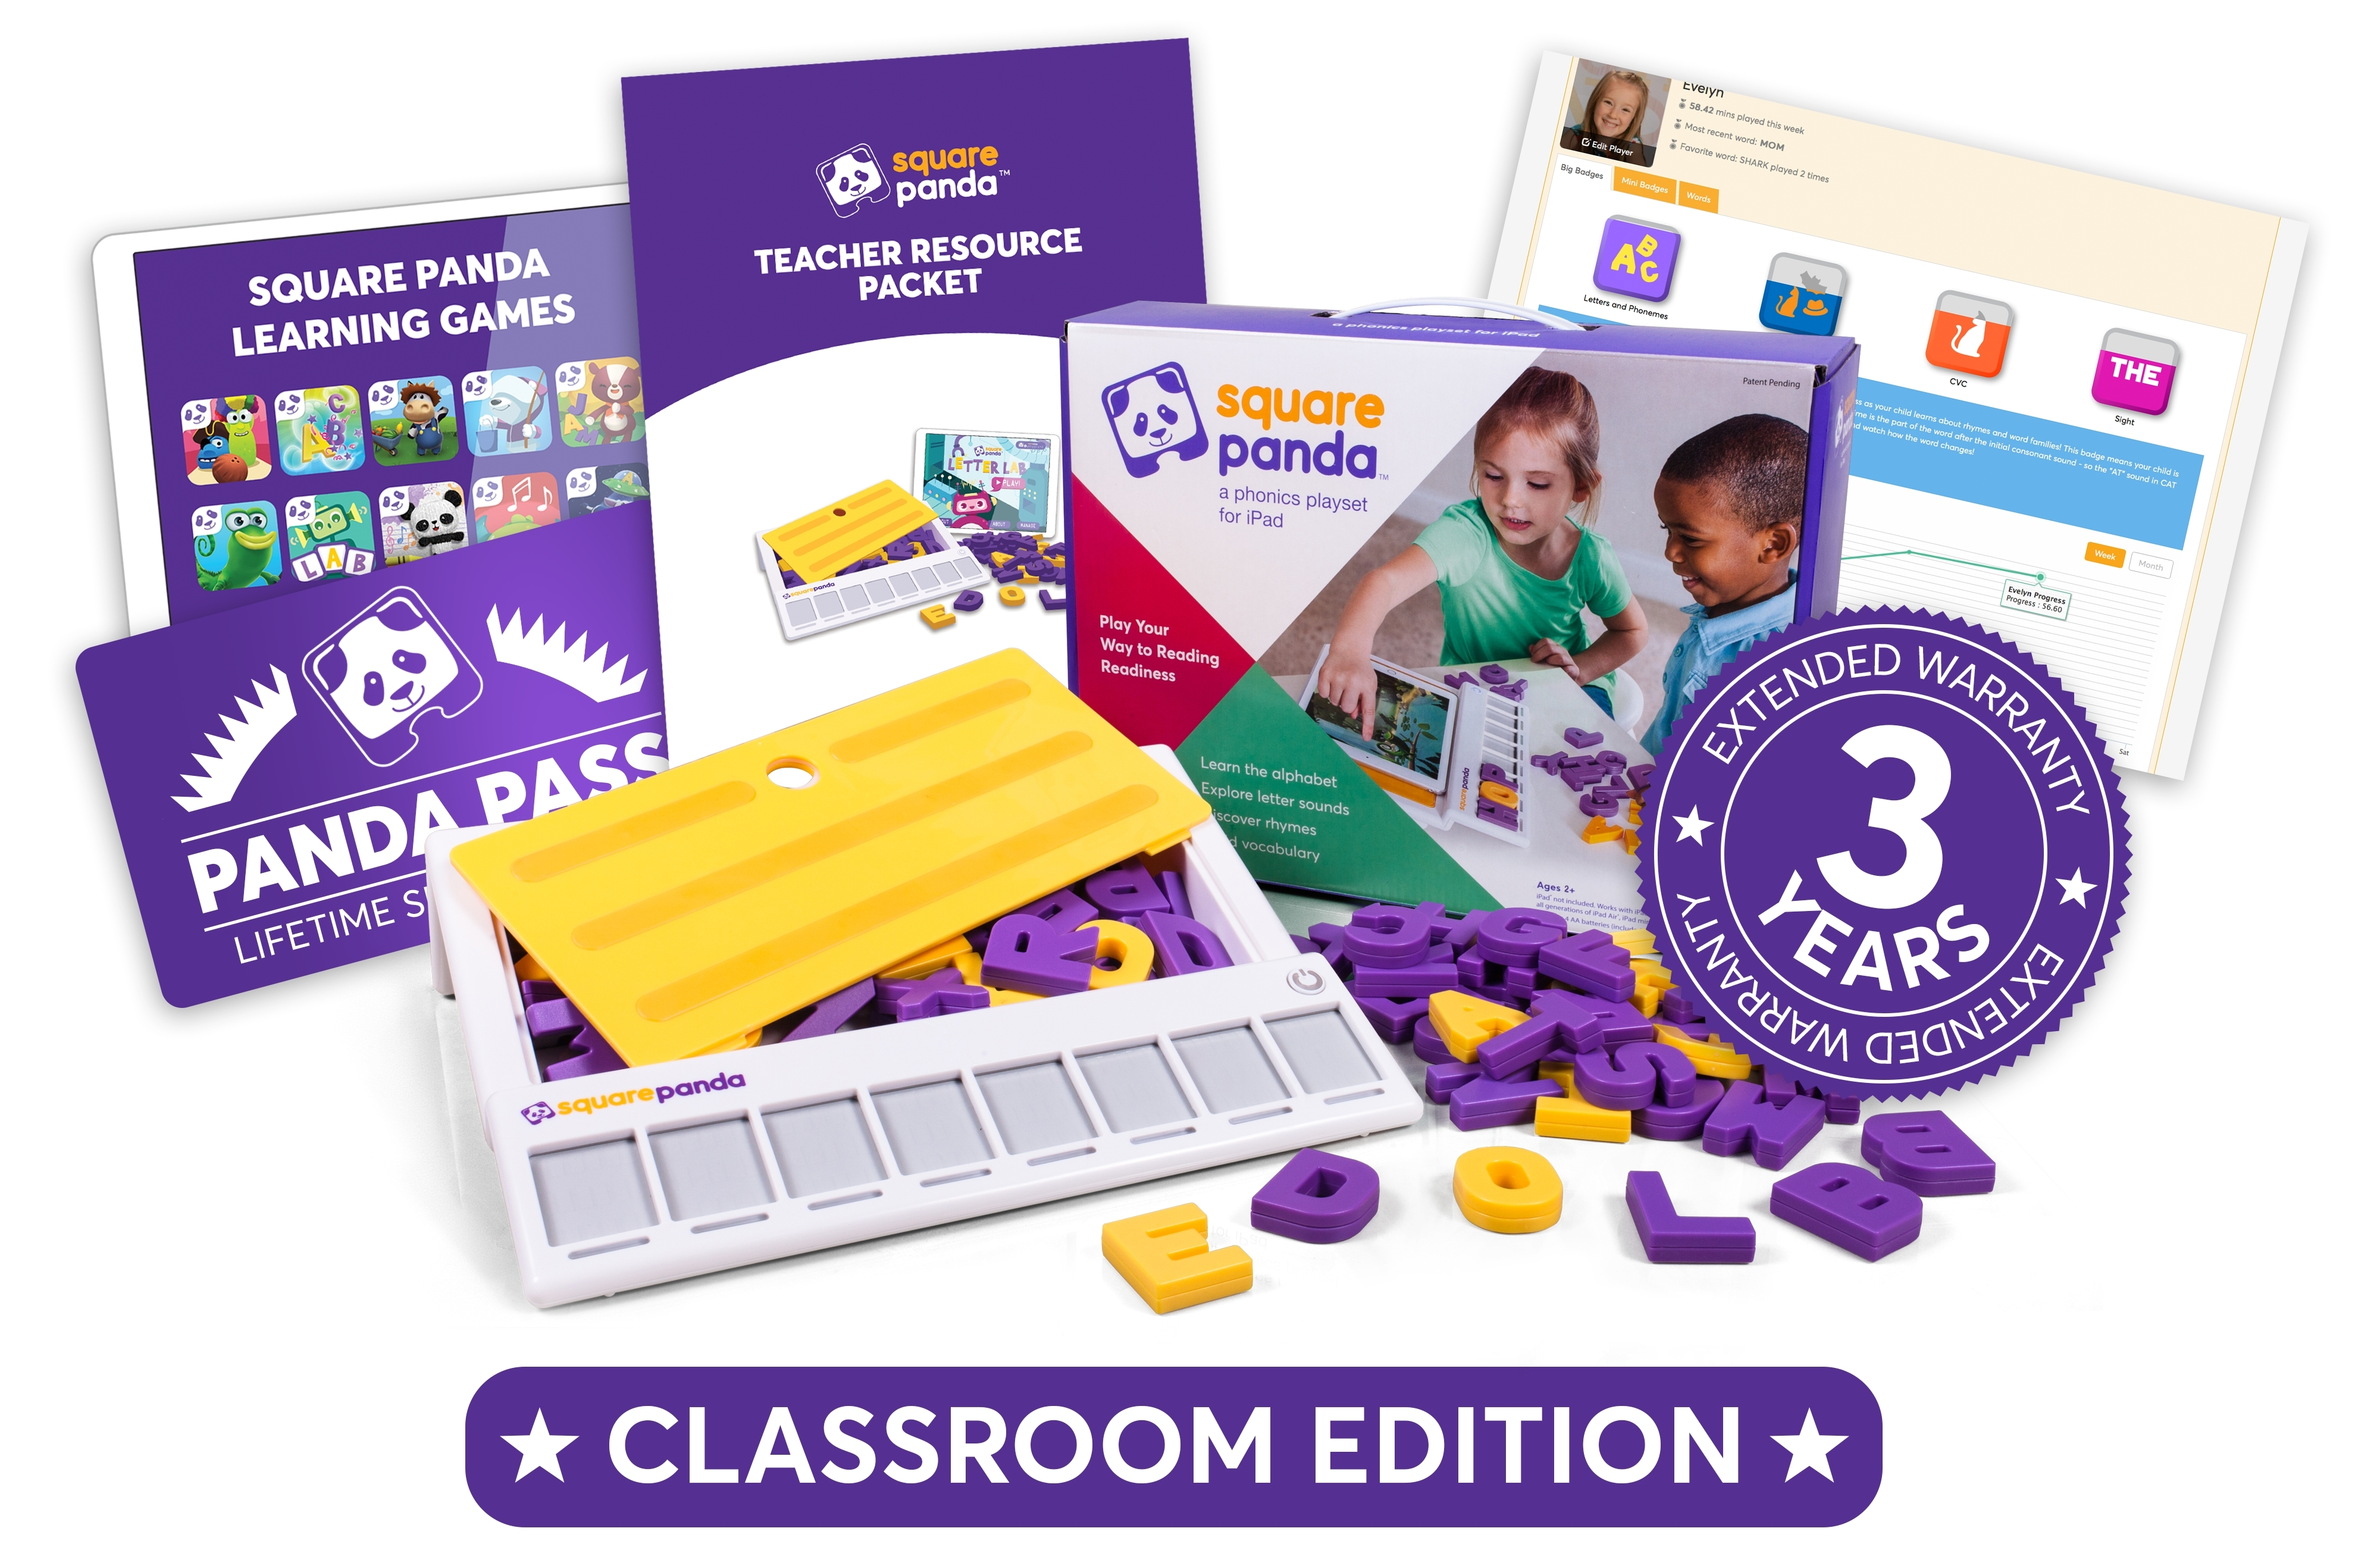 The Square Panda Classroom Edition offers teachers a complete early literacy package to support phonics development in their classroom (Graphic: Business Wire)